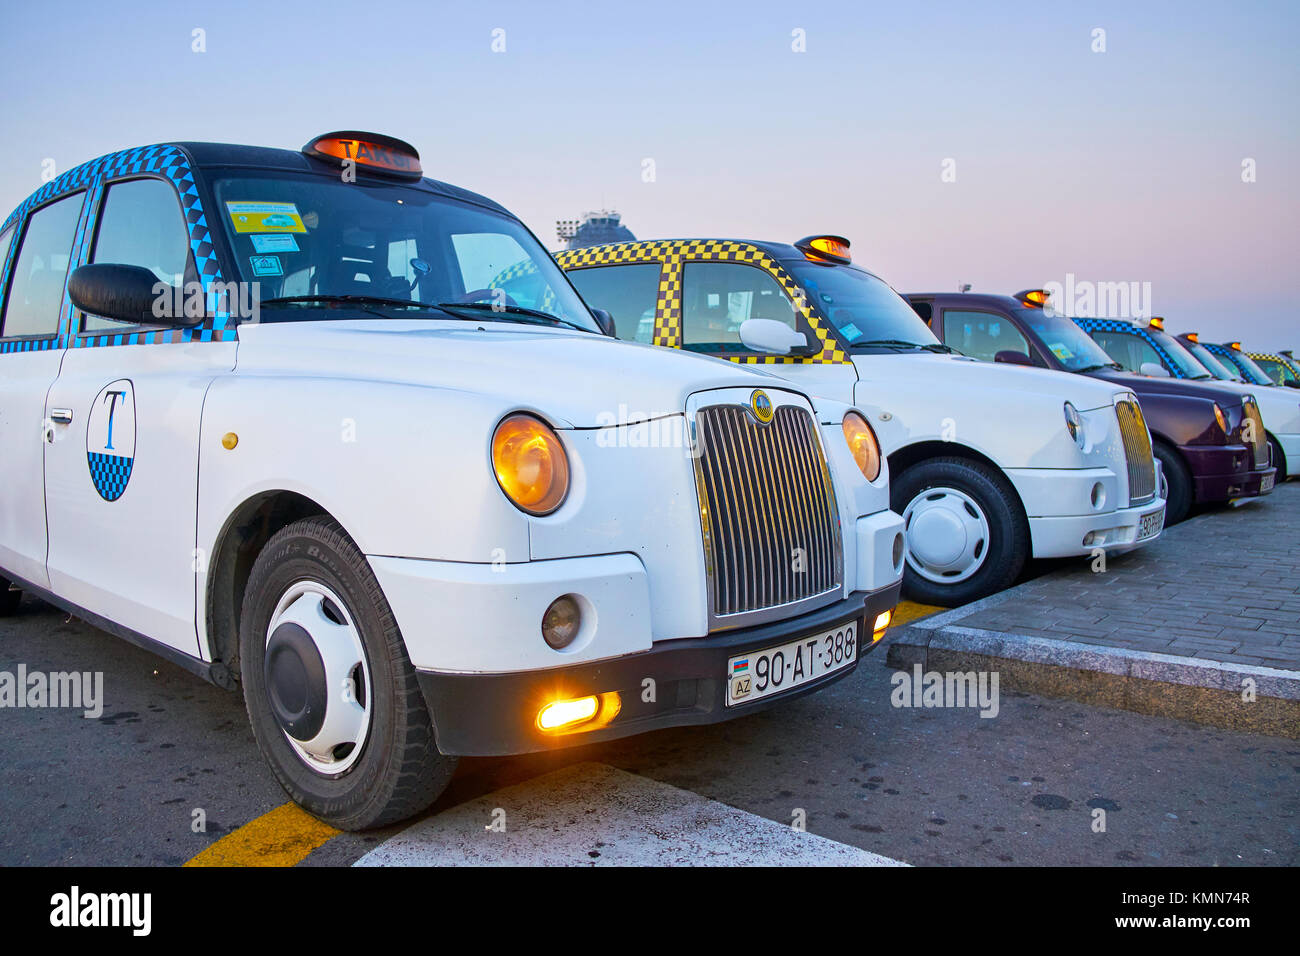 BINA, AZERBAIJAN - OCTOBER 9, 2017: Transfer from Heydar Aliyev Airport to Baku on white cab is the first pleasure - Stock Image